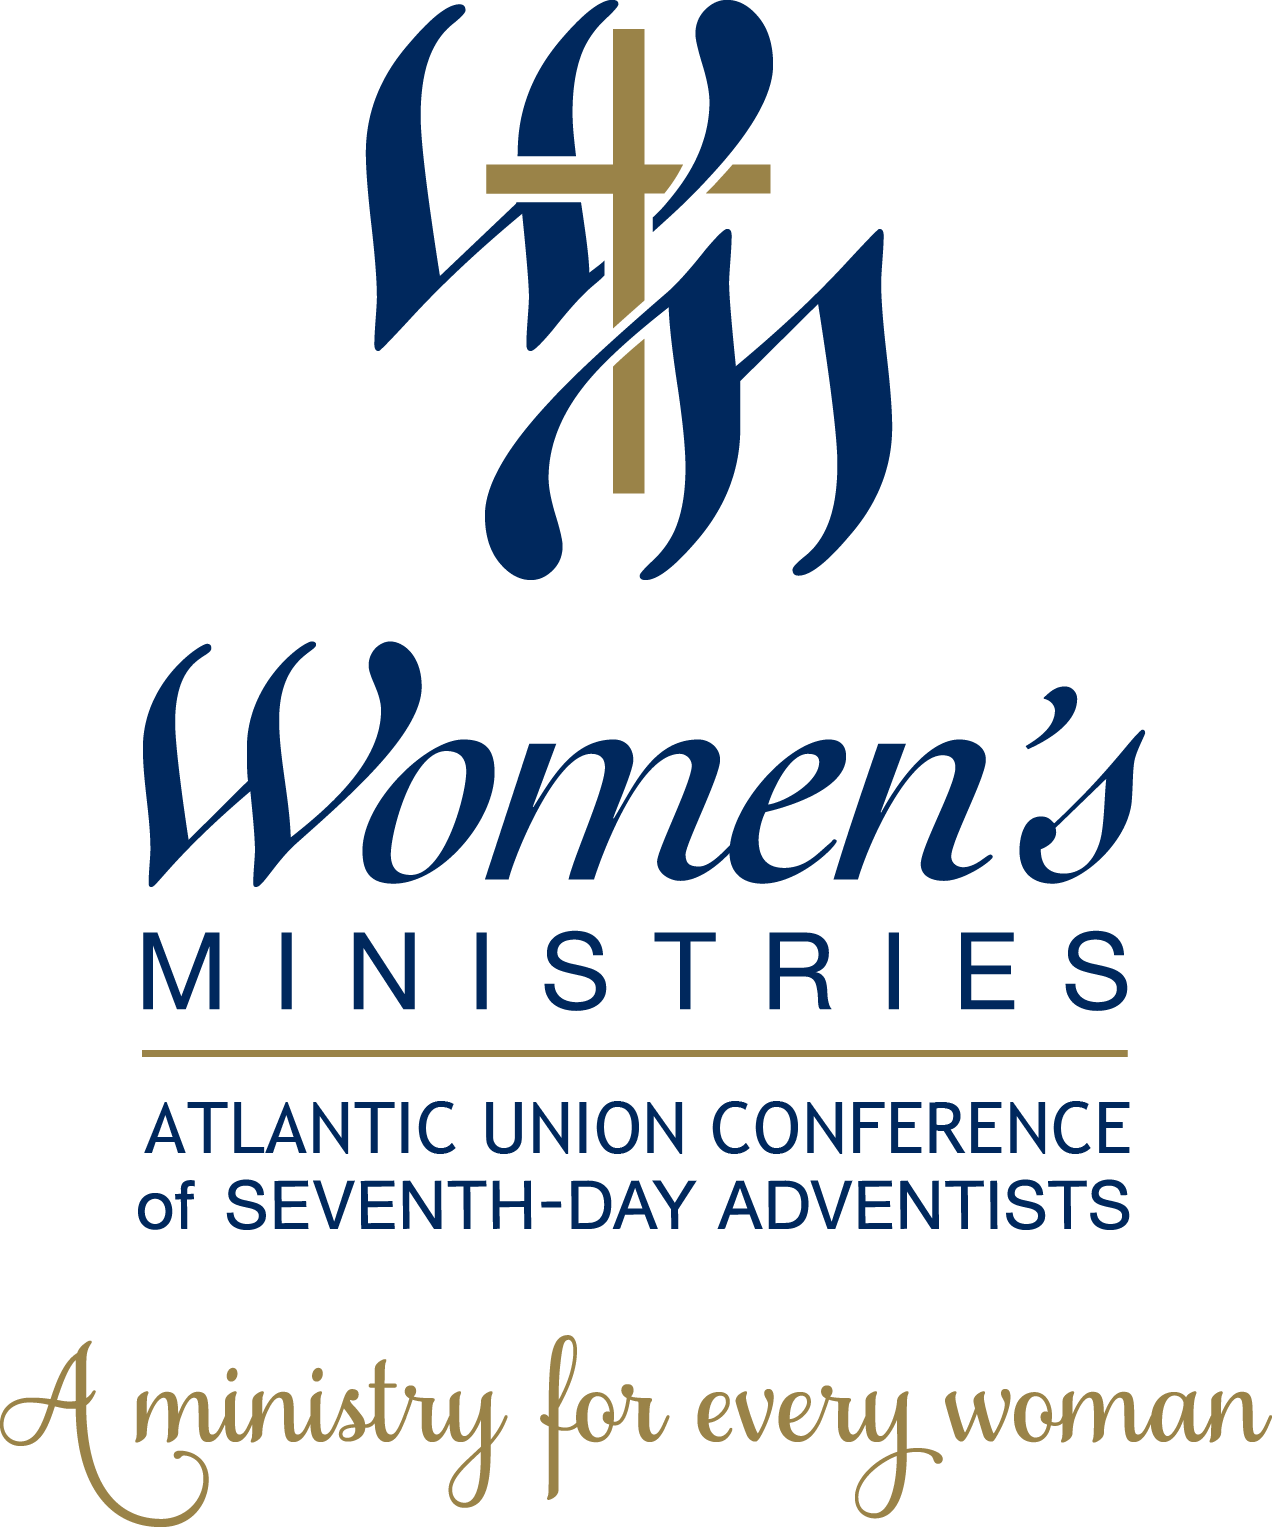 Women's Ministries | Atlantic Union Conference of the Seventh-day